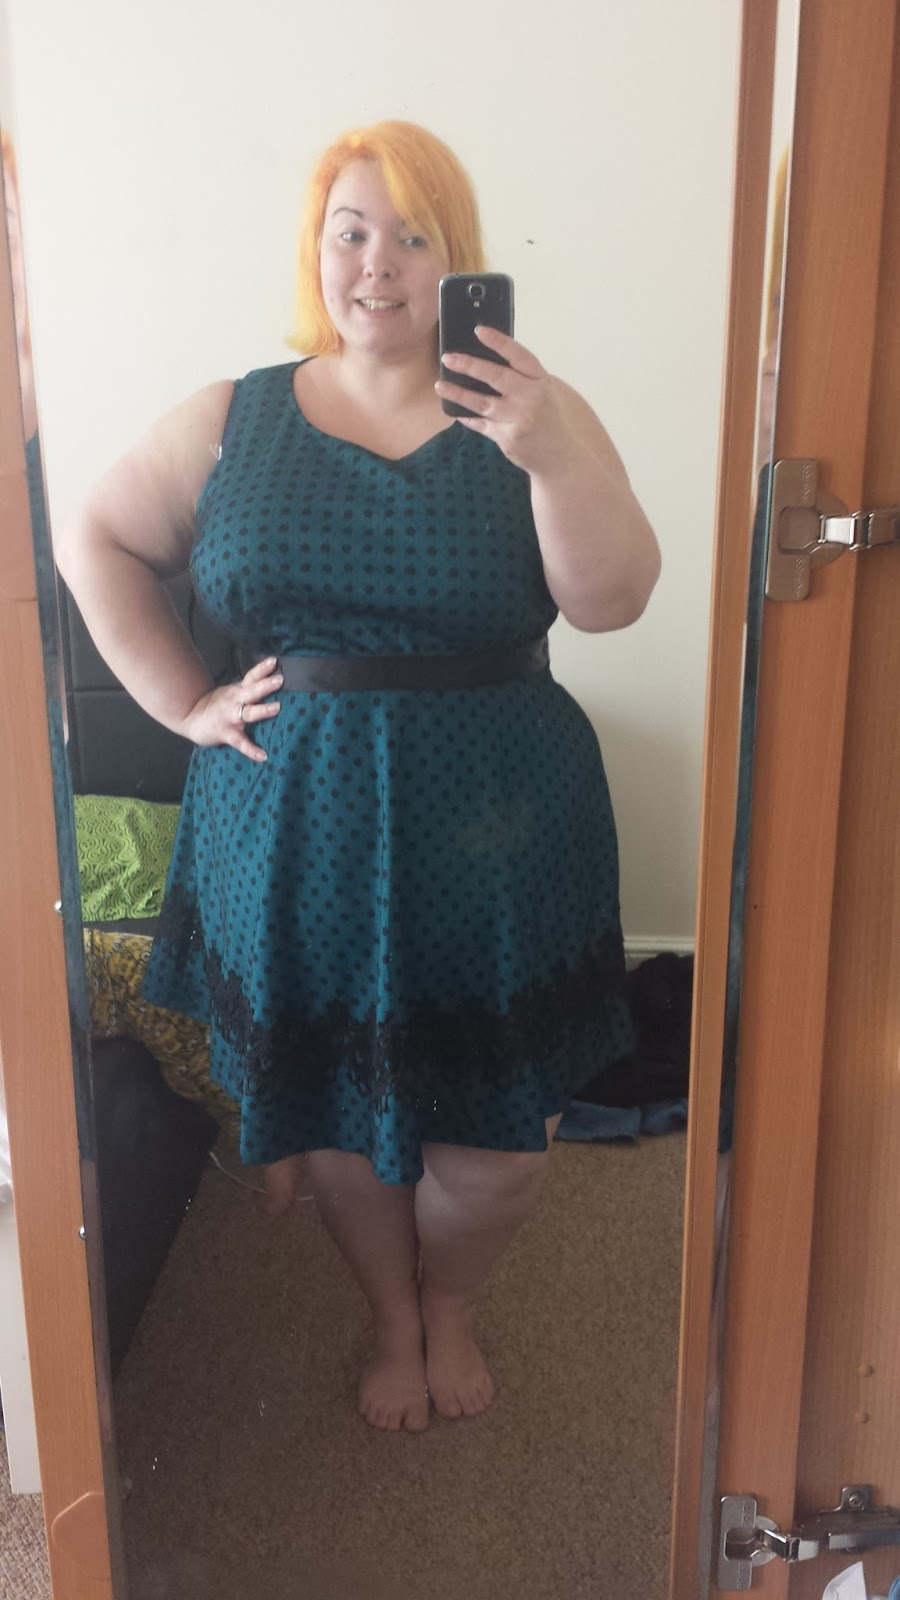 curvy cupcake, curvy, plus size, dresses, dress, modcloth, stylish surprise, thick, fat, chubby, chunky, bbw, fashion, fatshion, knees, legs, boobs, selfie, style, body, bodies, teal, green, polka dot, spot, lace